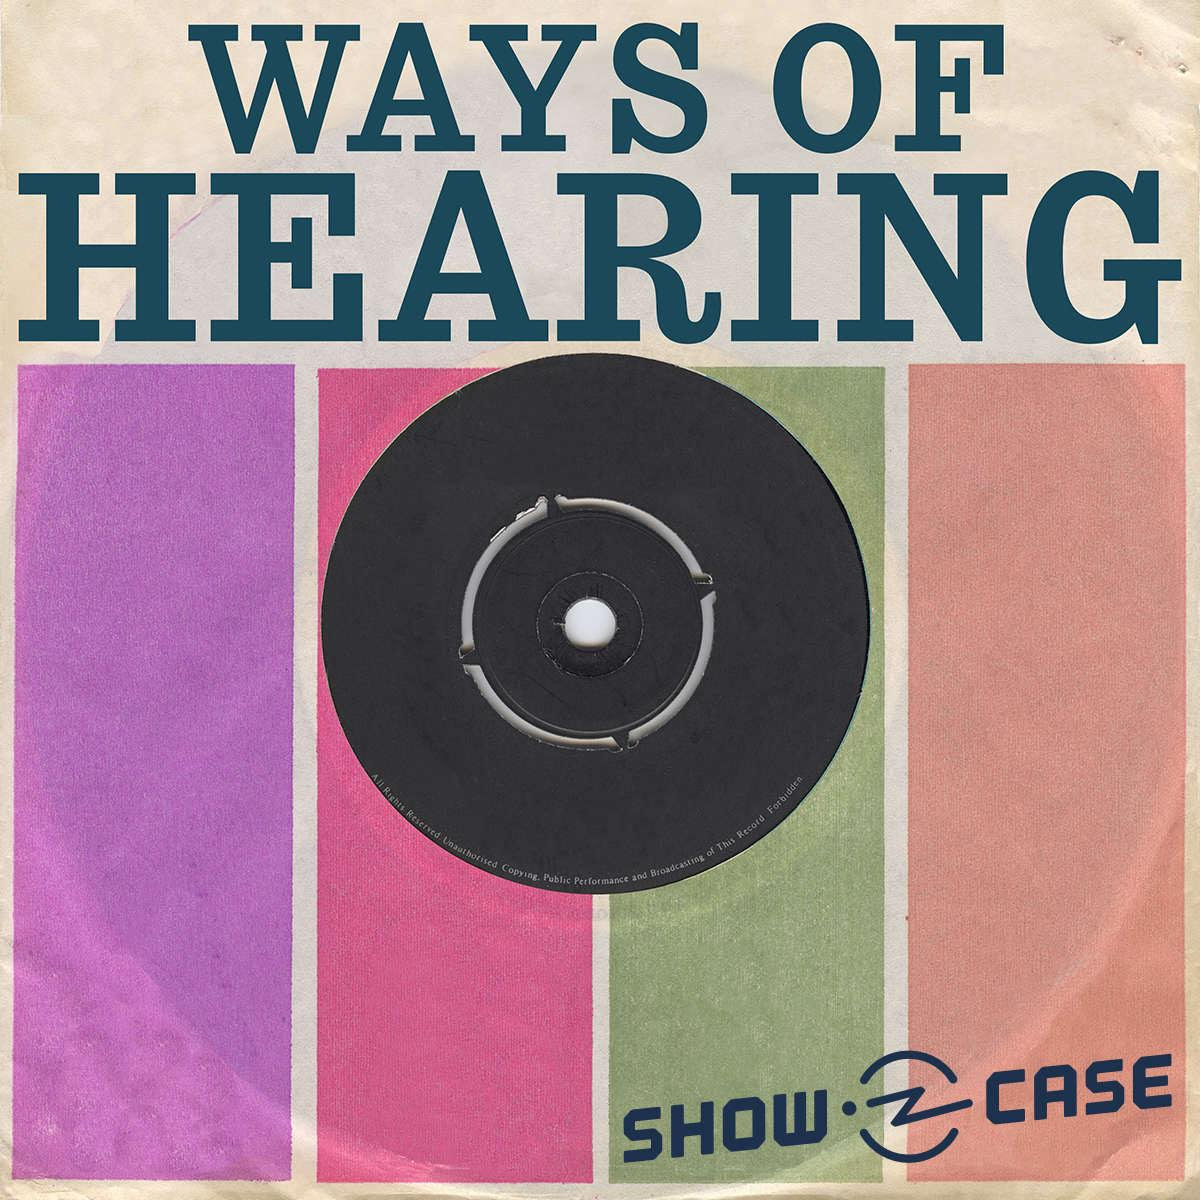 Ways of Hearing podcast